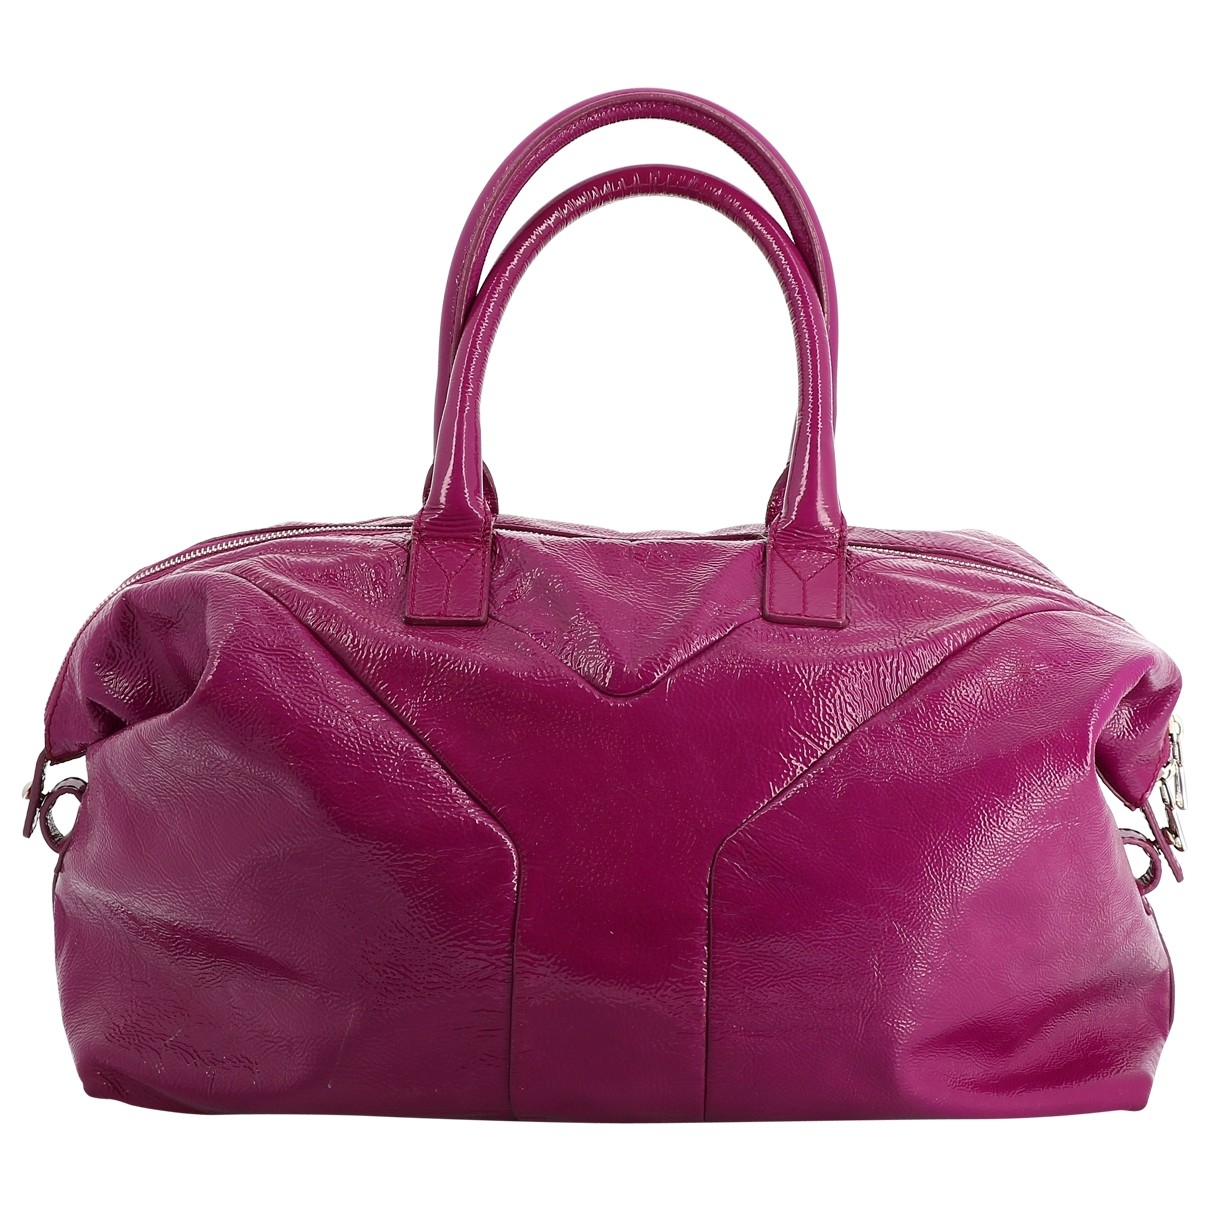 Yves Saint Laurent Easy Pink Patent leather handbag for Women \N